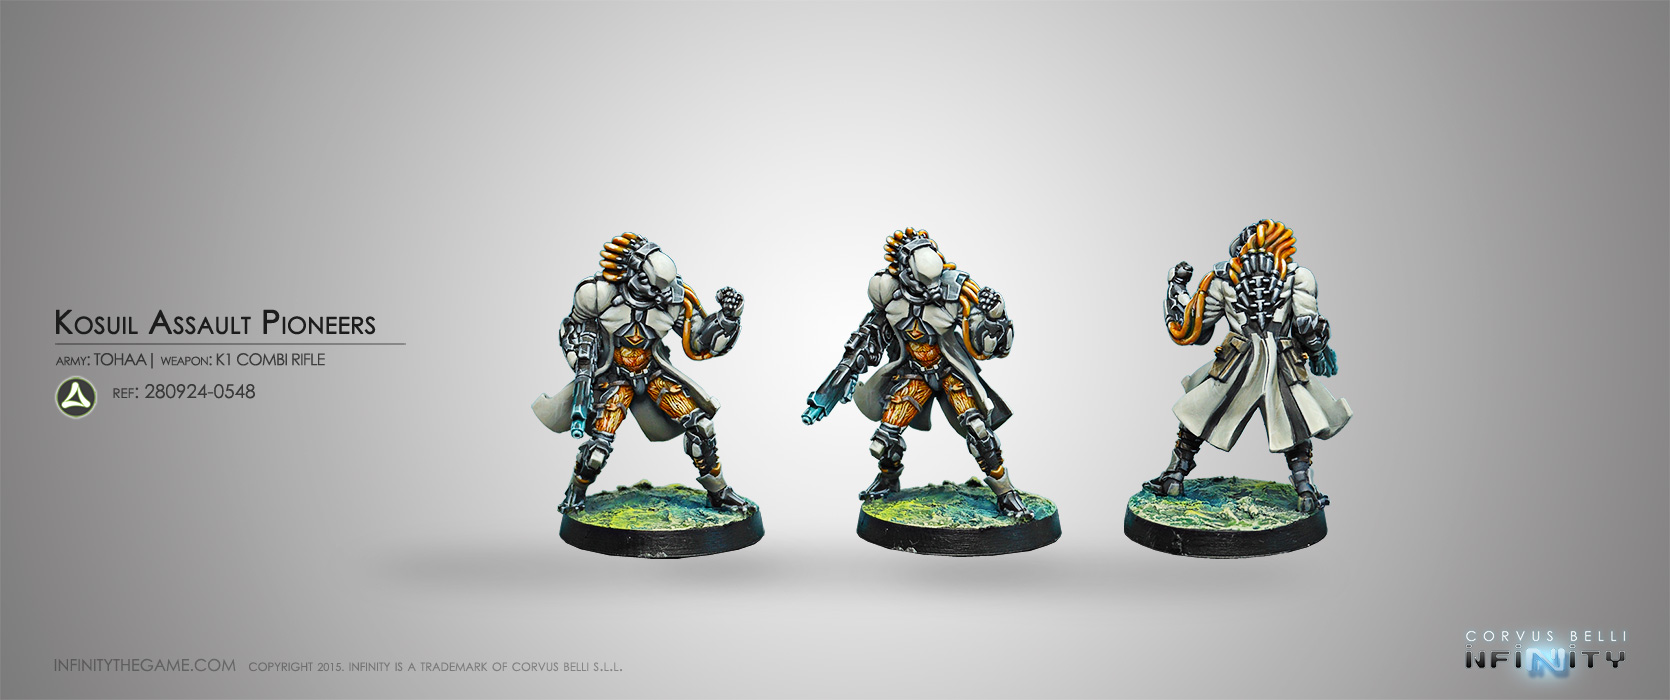 Kosuil Assault Pioneers - Infinity